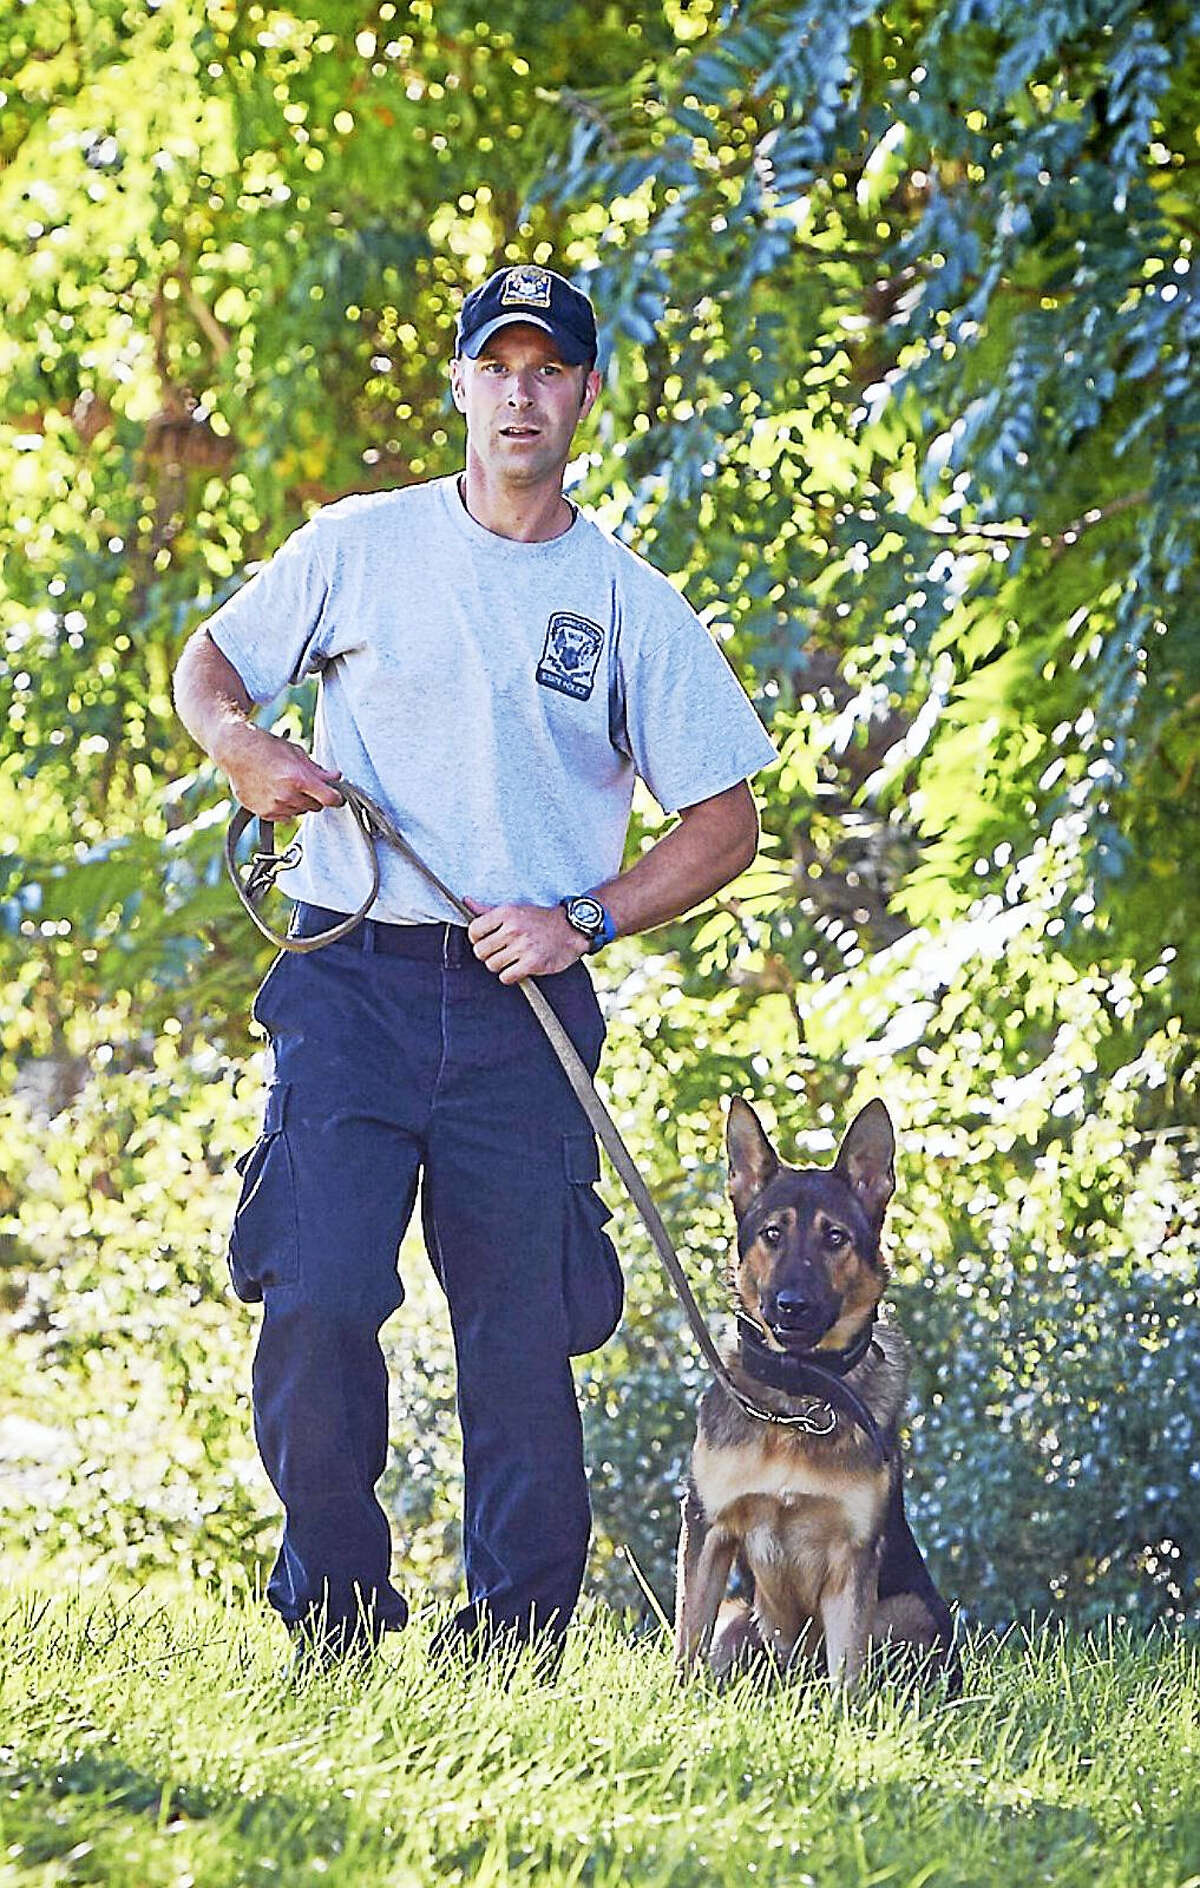 K-9 Tobi works with State Trooper Bruce LaChance.